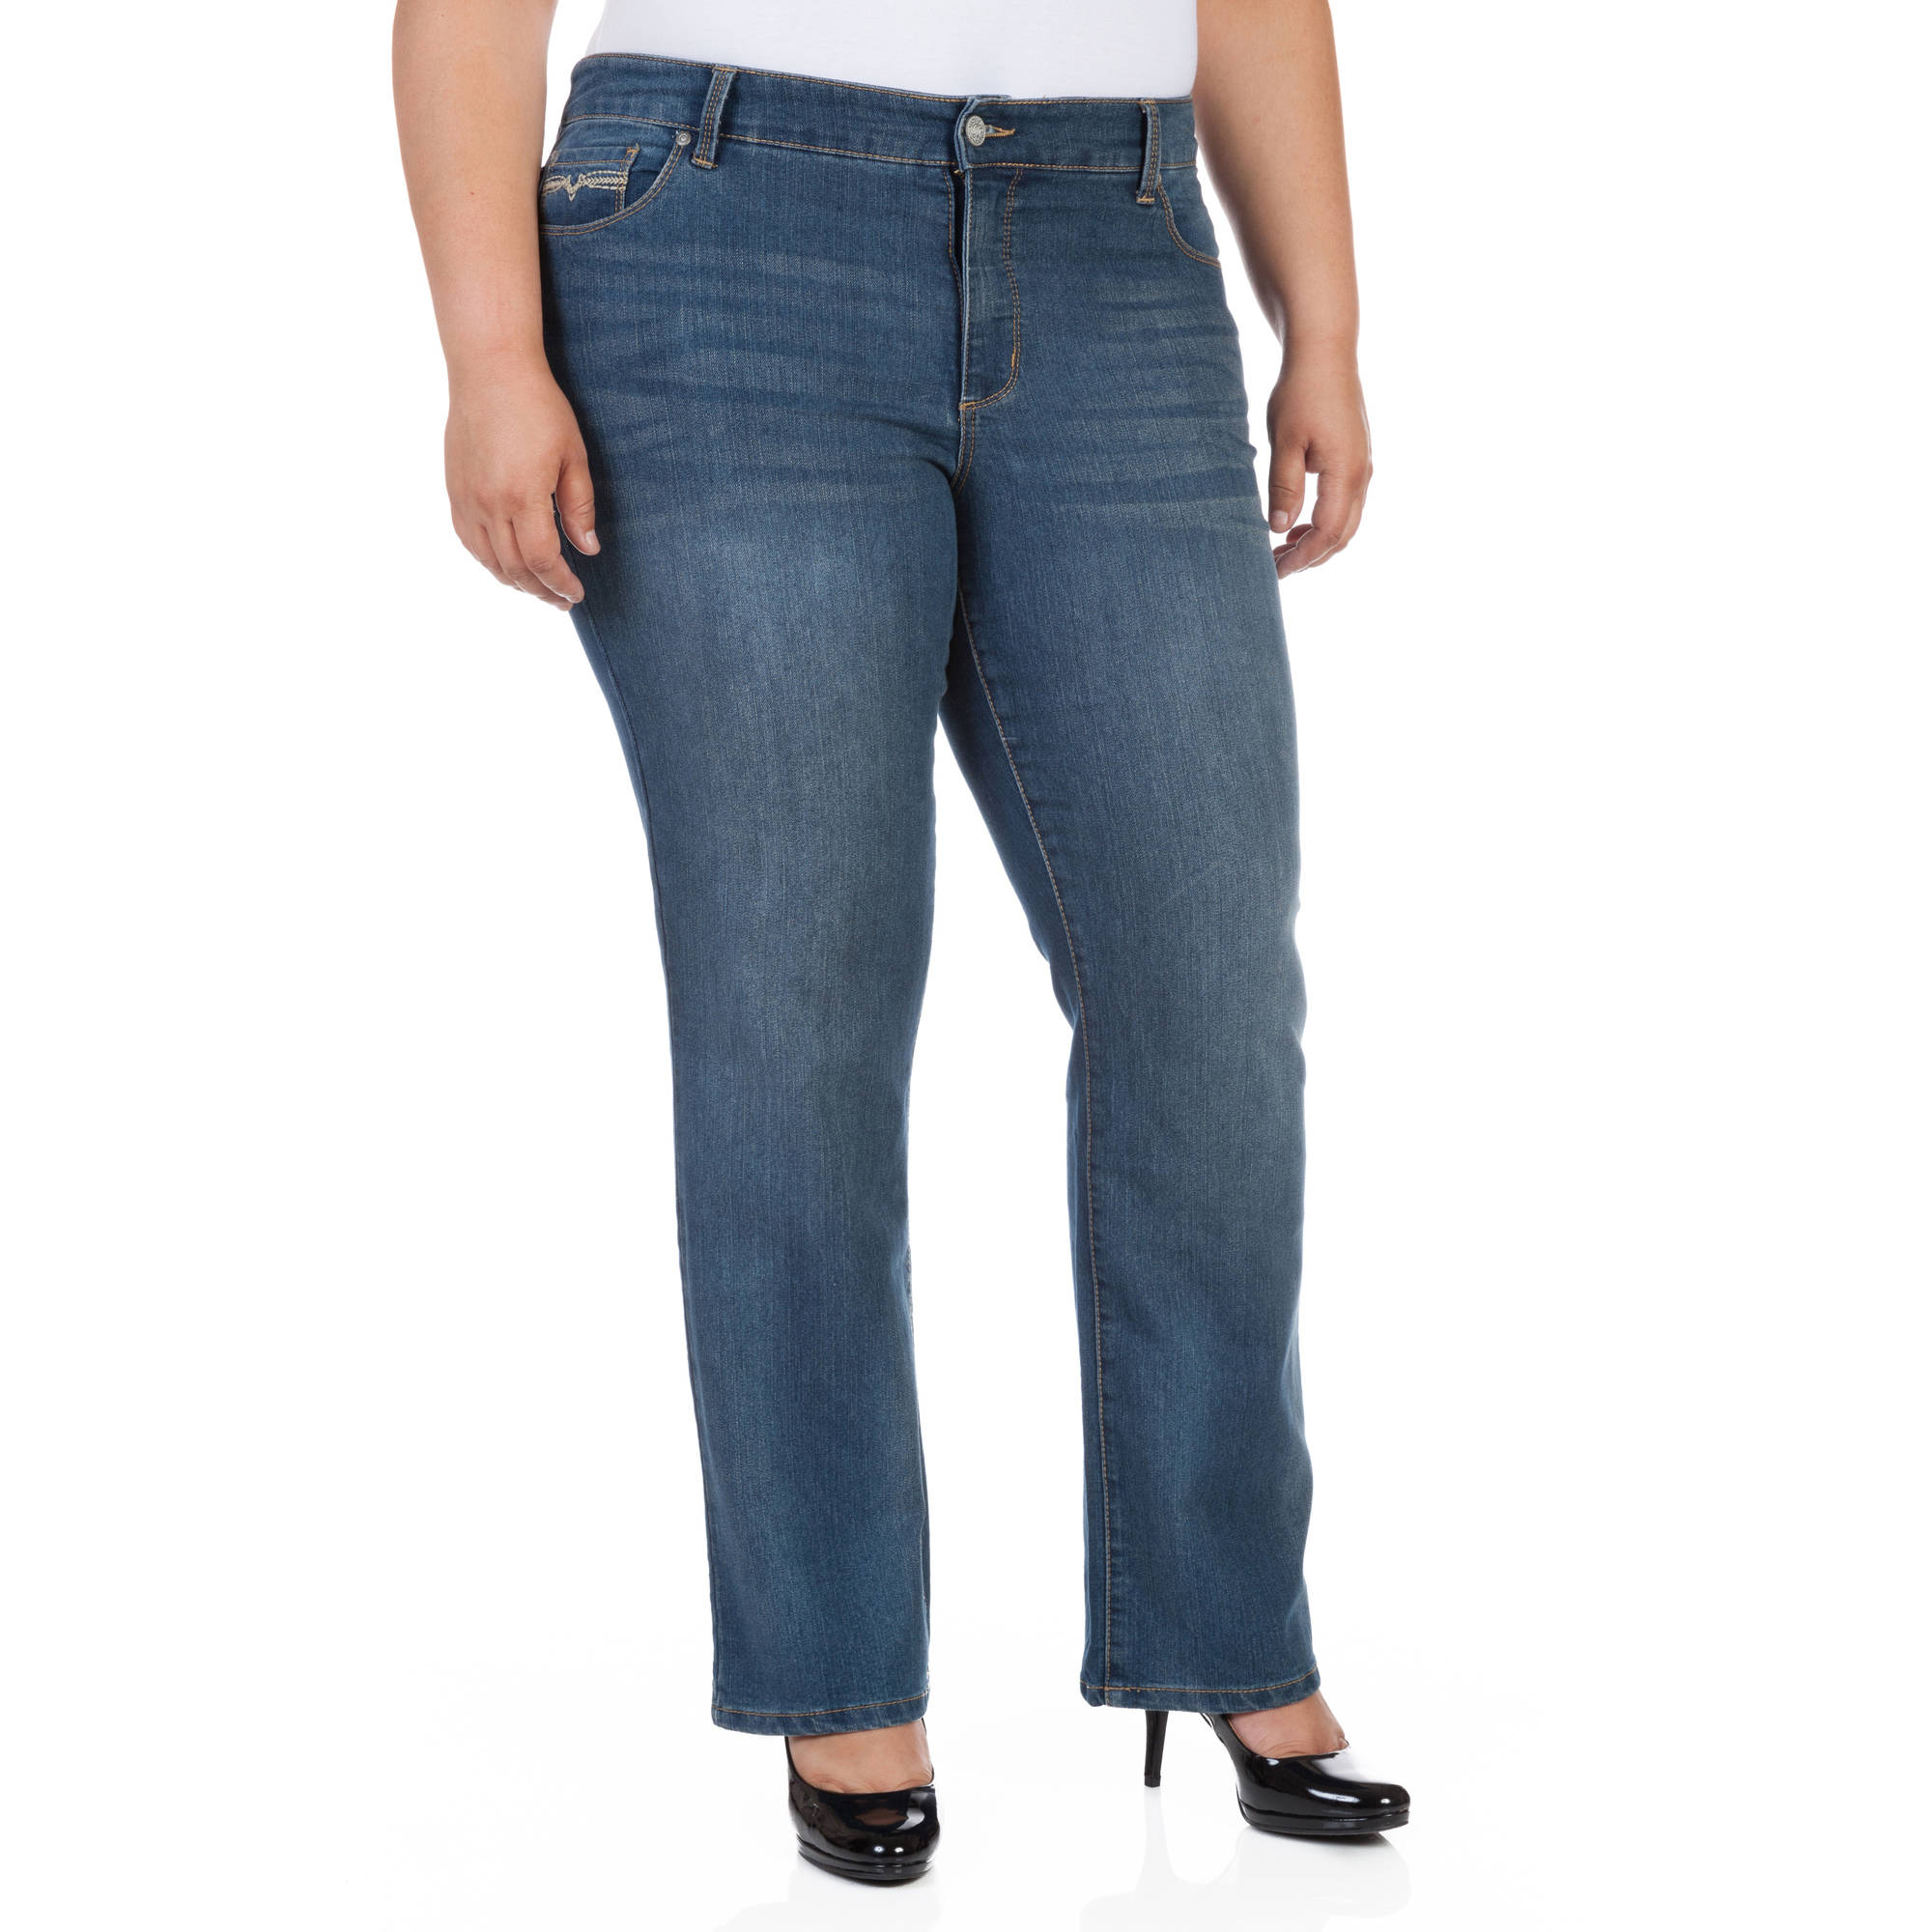 Faded Glory Women's Plus-Size Slim Boot cut Jeans